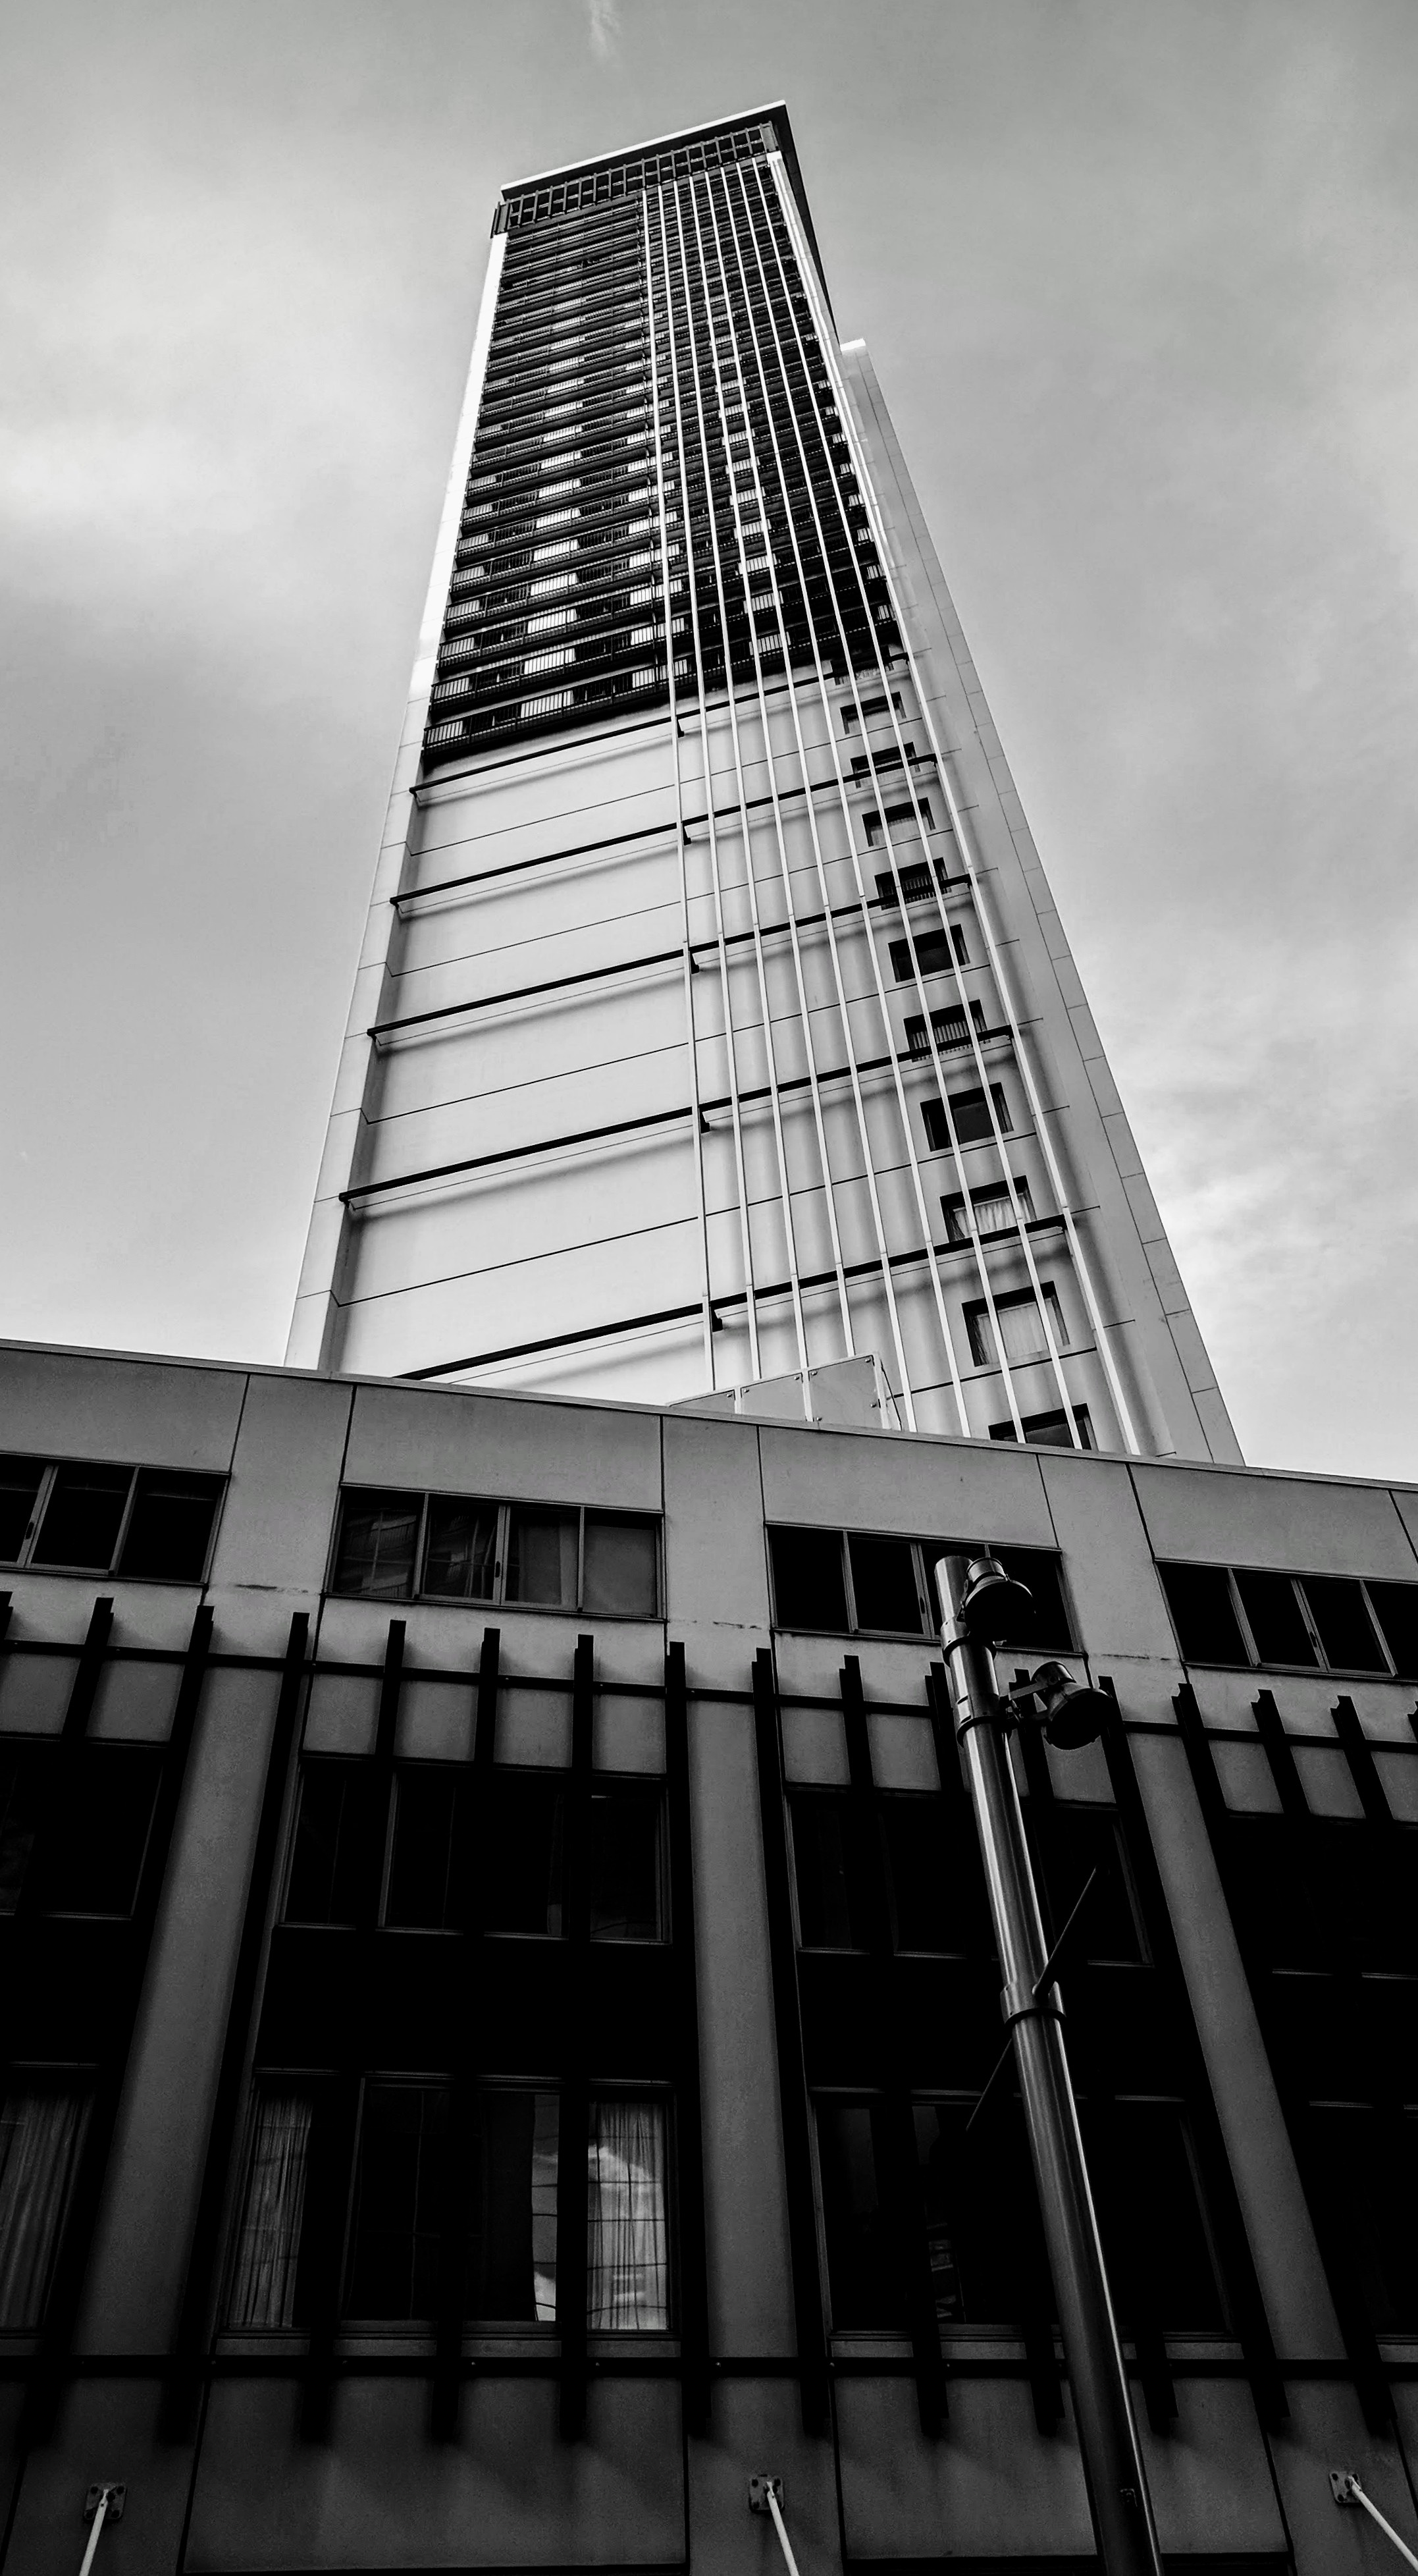 Black and White photograph of a tall Central Auckland hotel in 2018